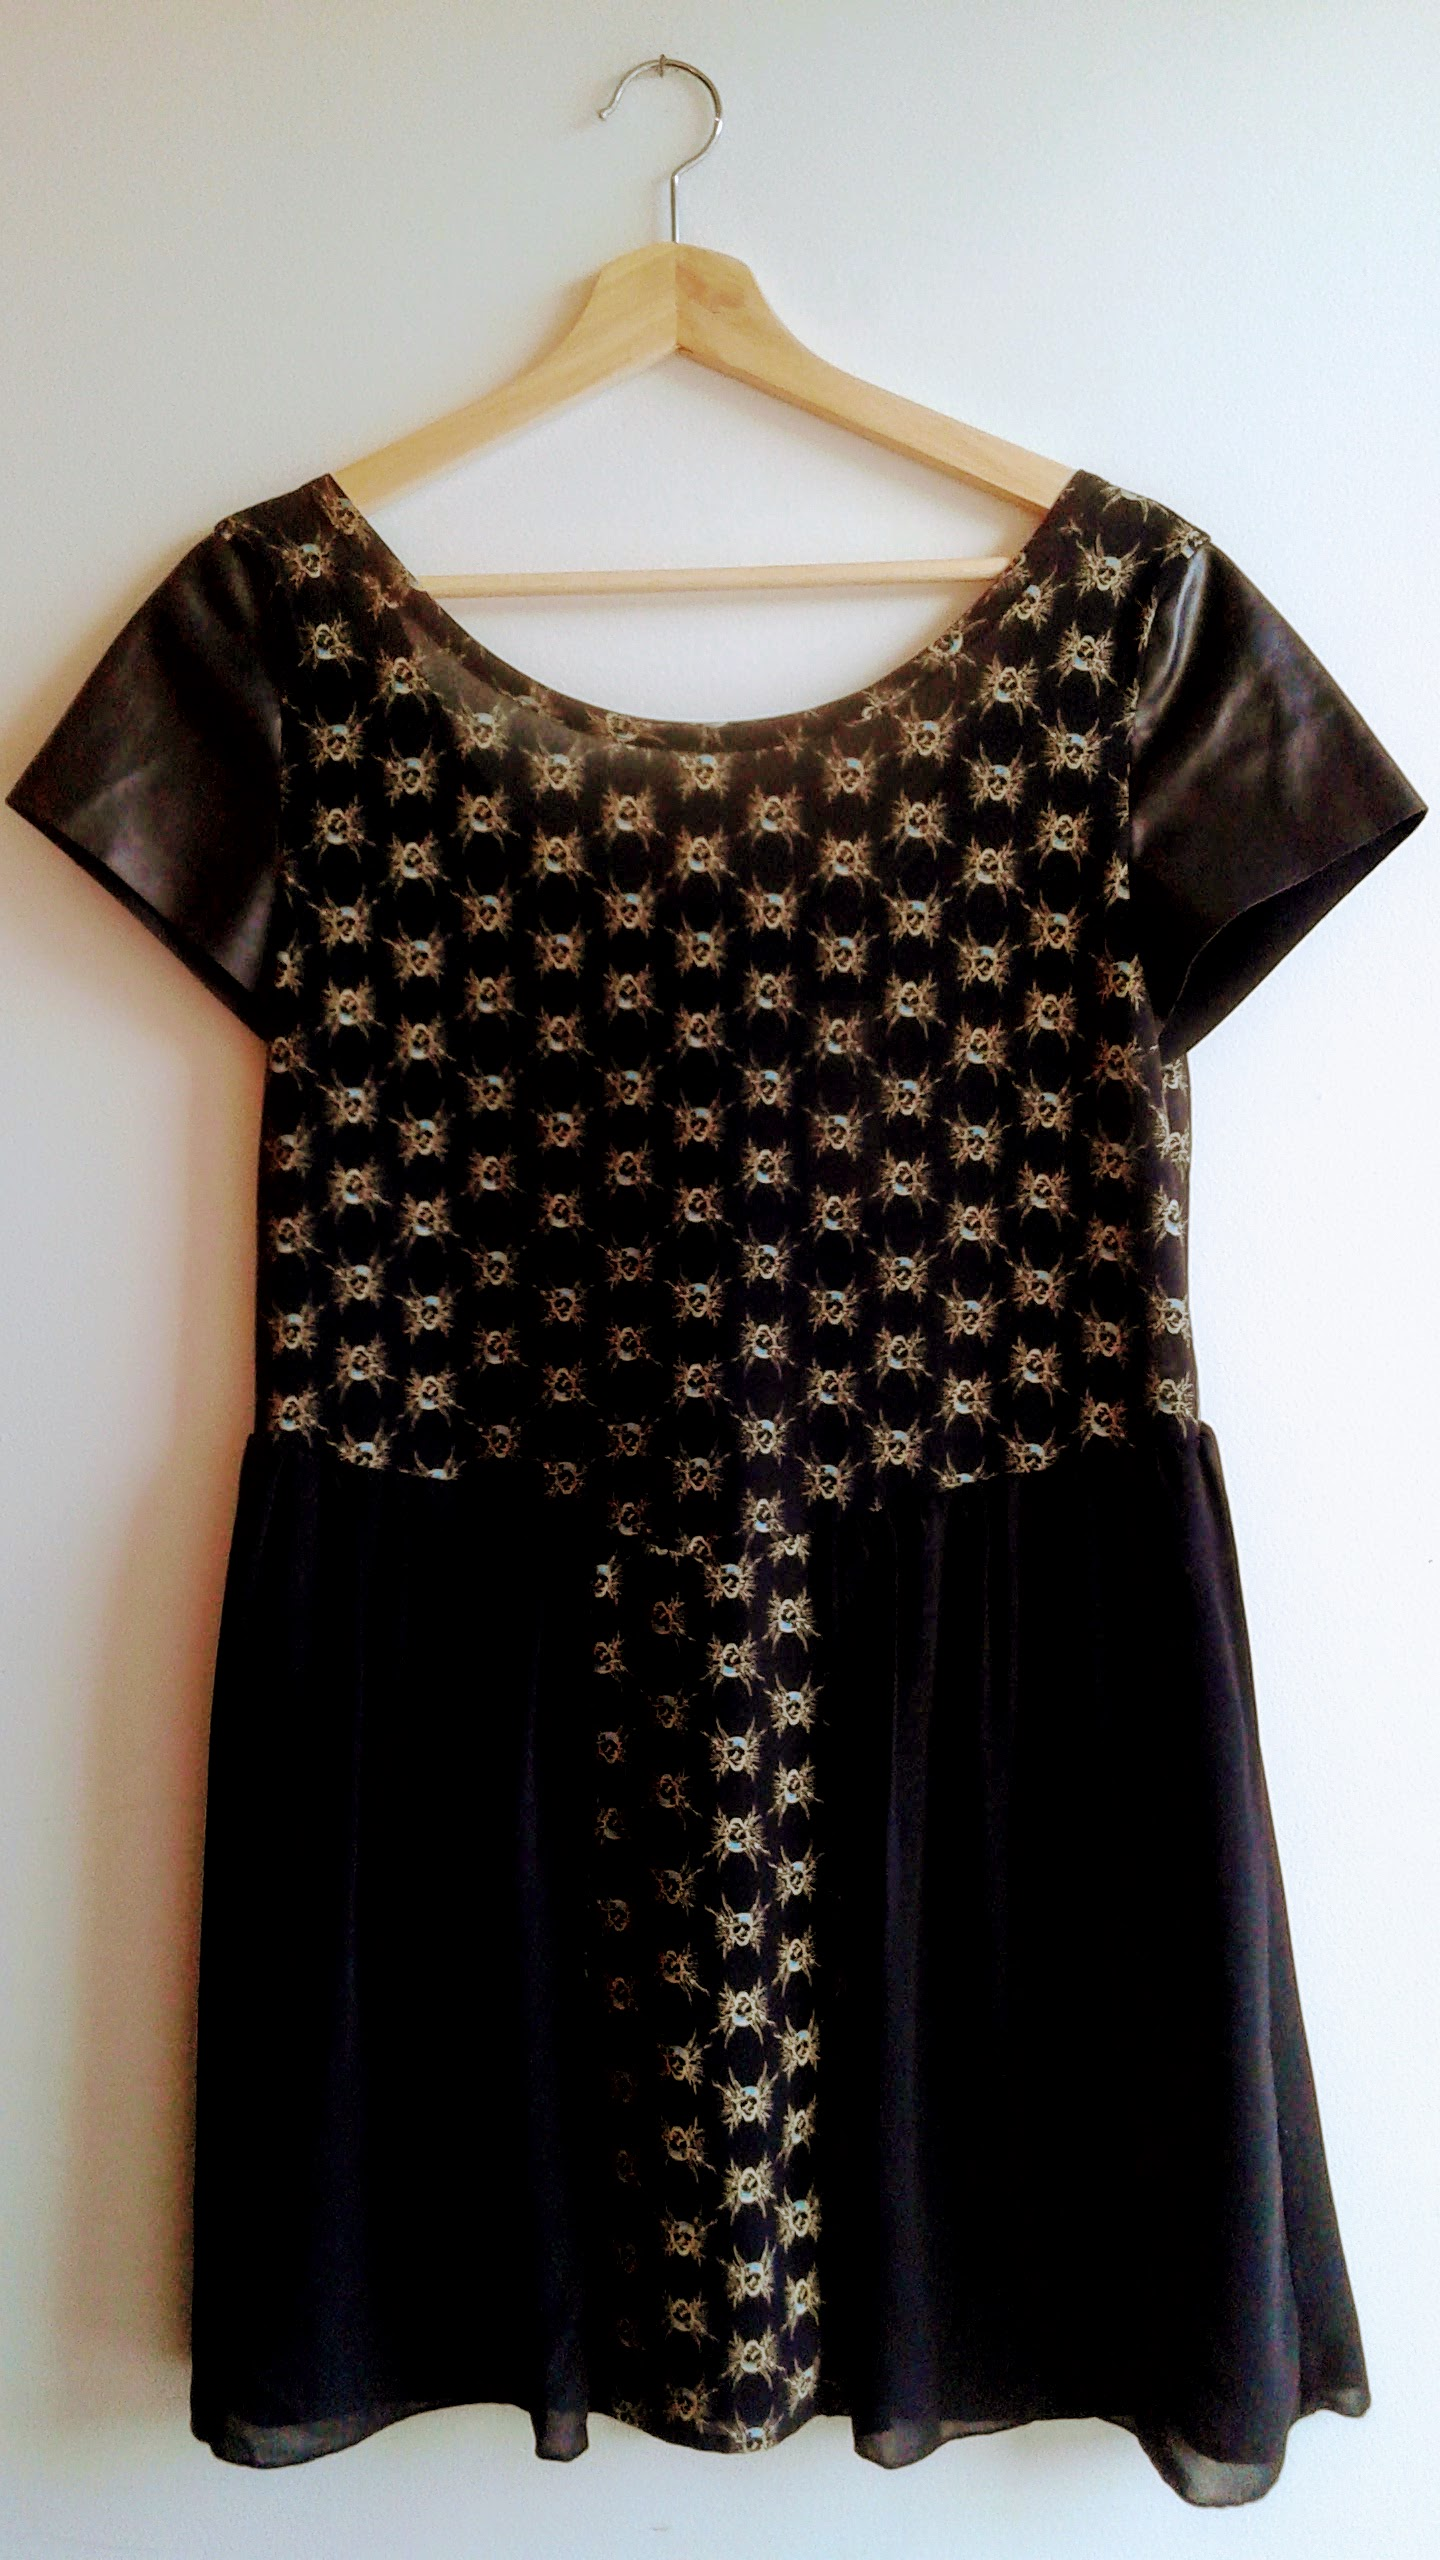 House of Harlow 1960 dress; Size S, $38